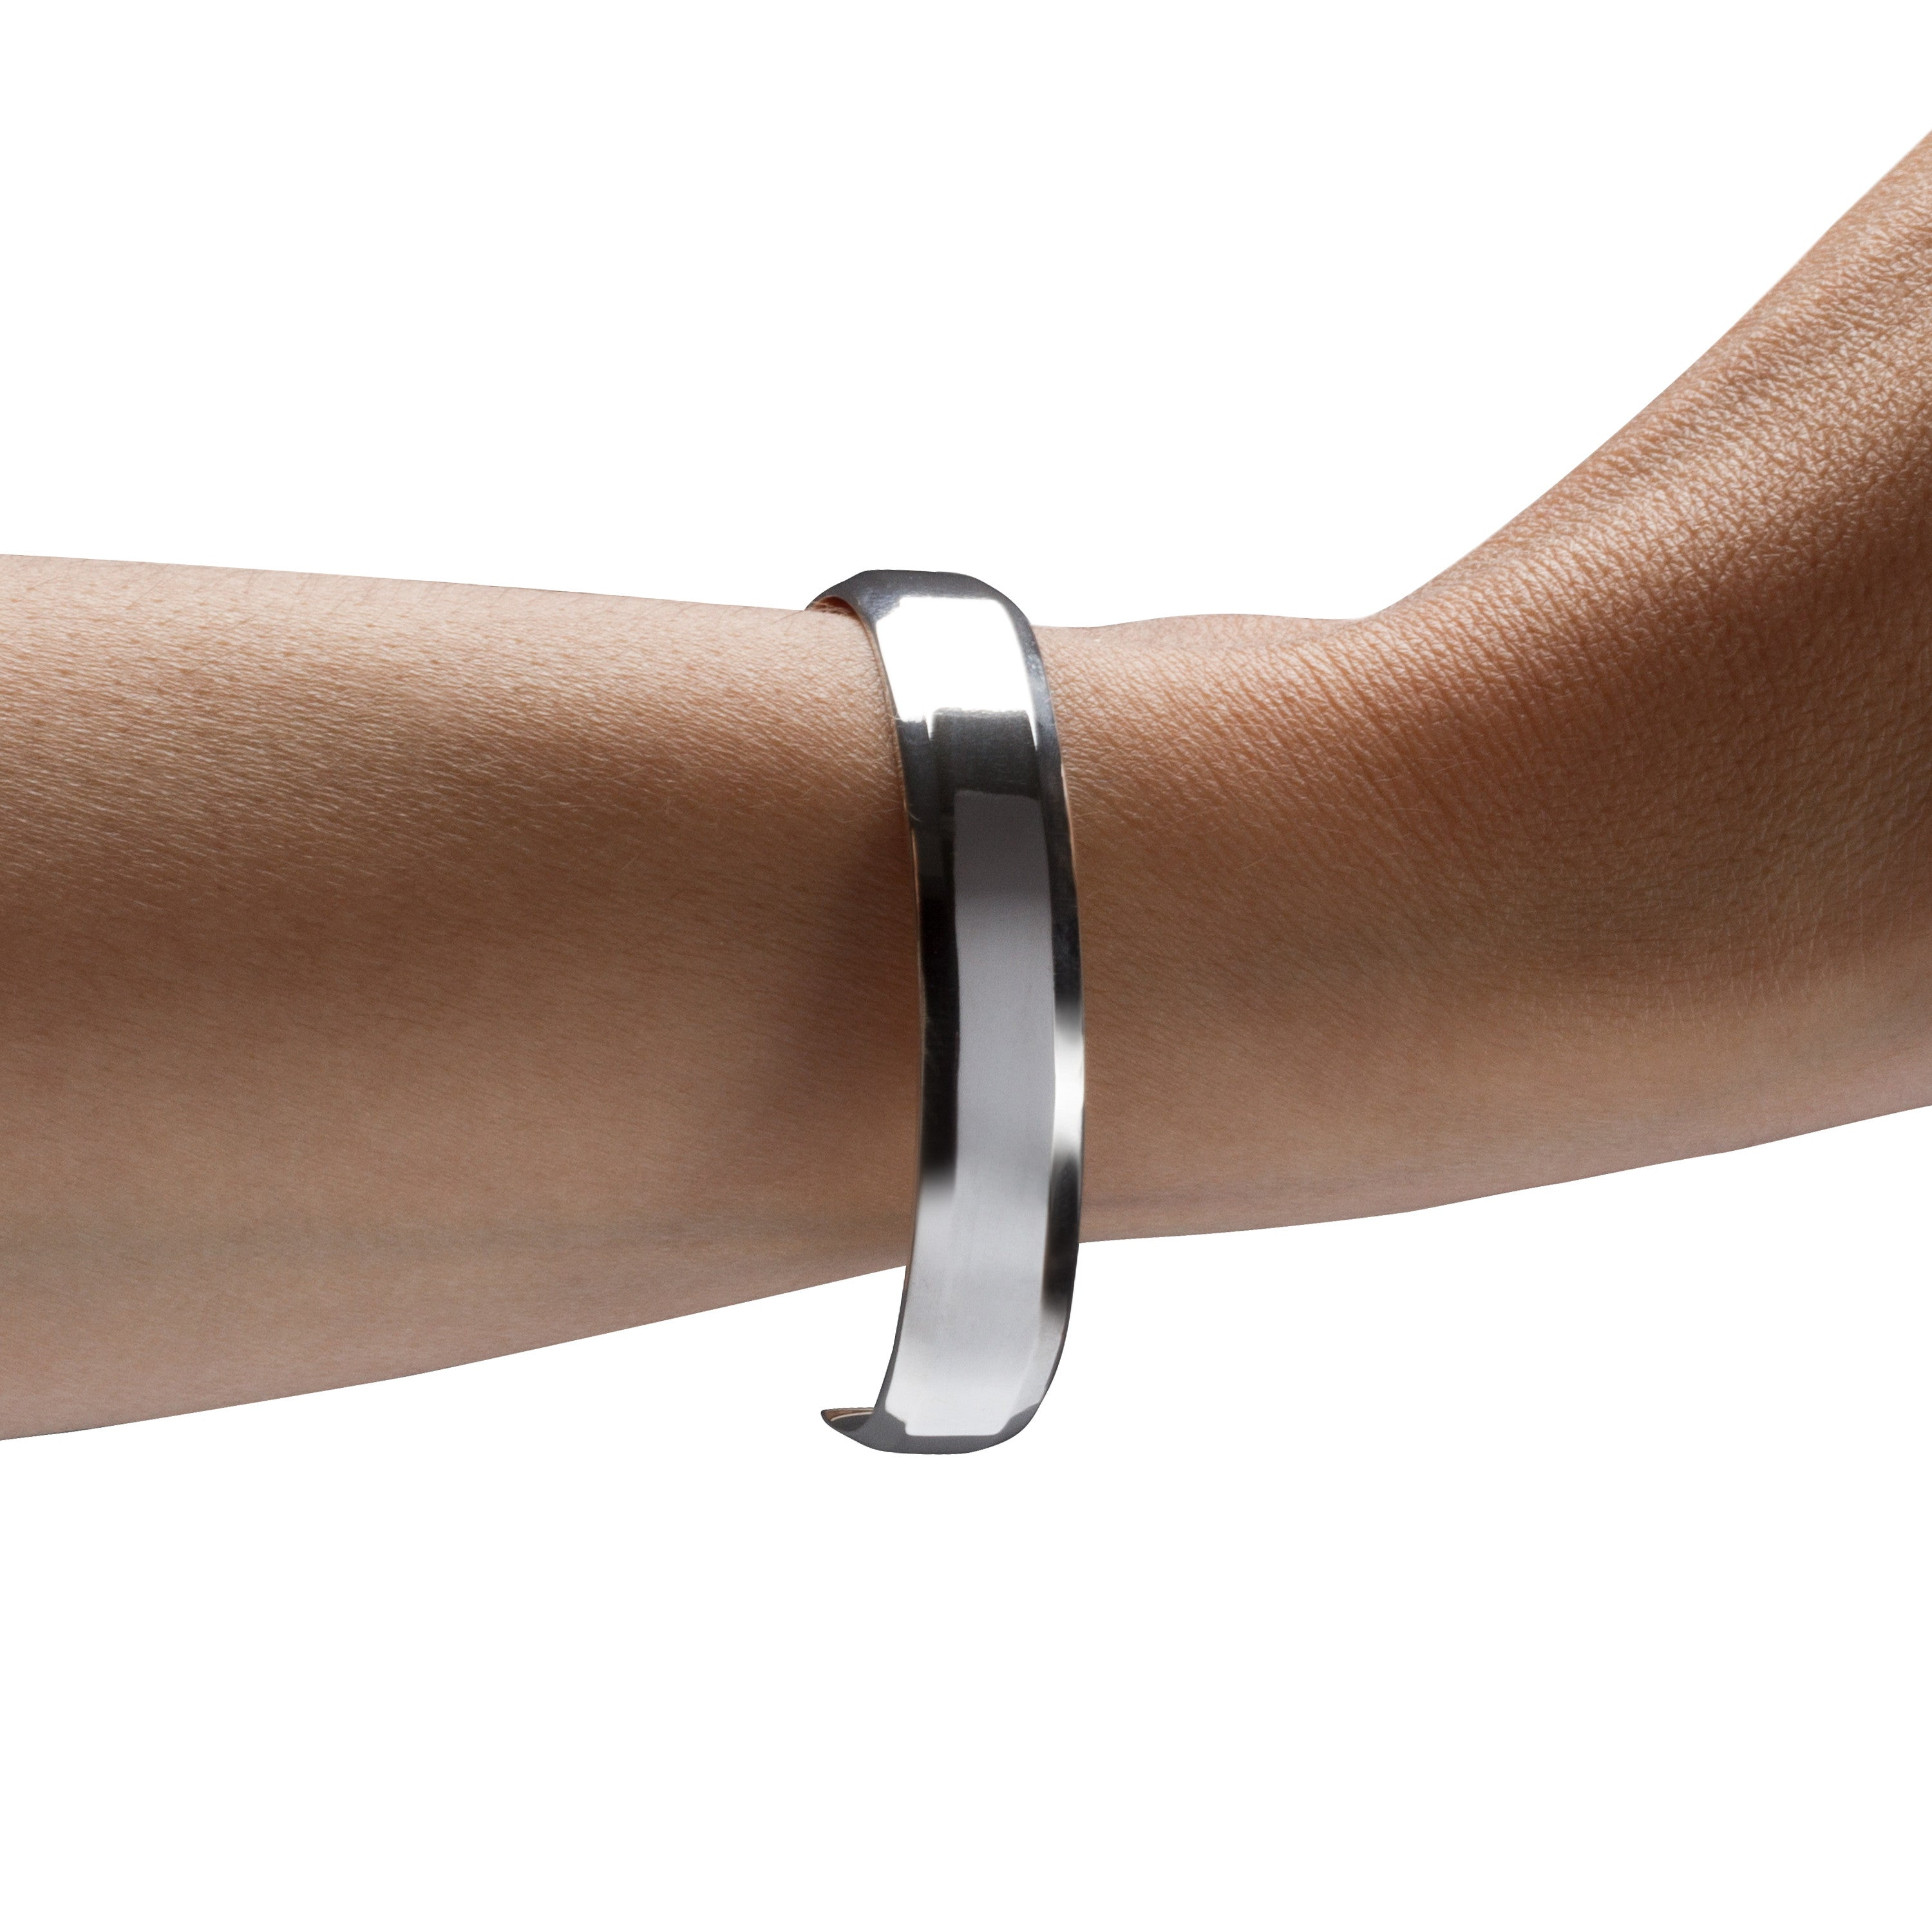 Modern Minimalist Wide Cuff Bracelet in Sterling Silver with Polished Surfaces